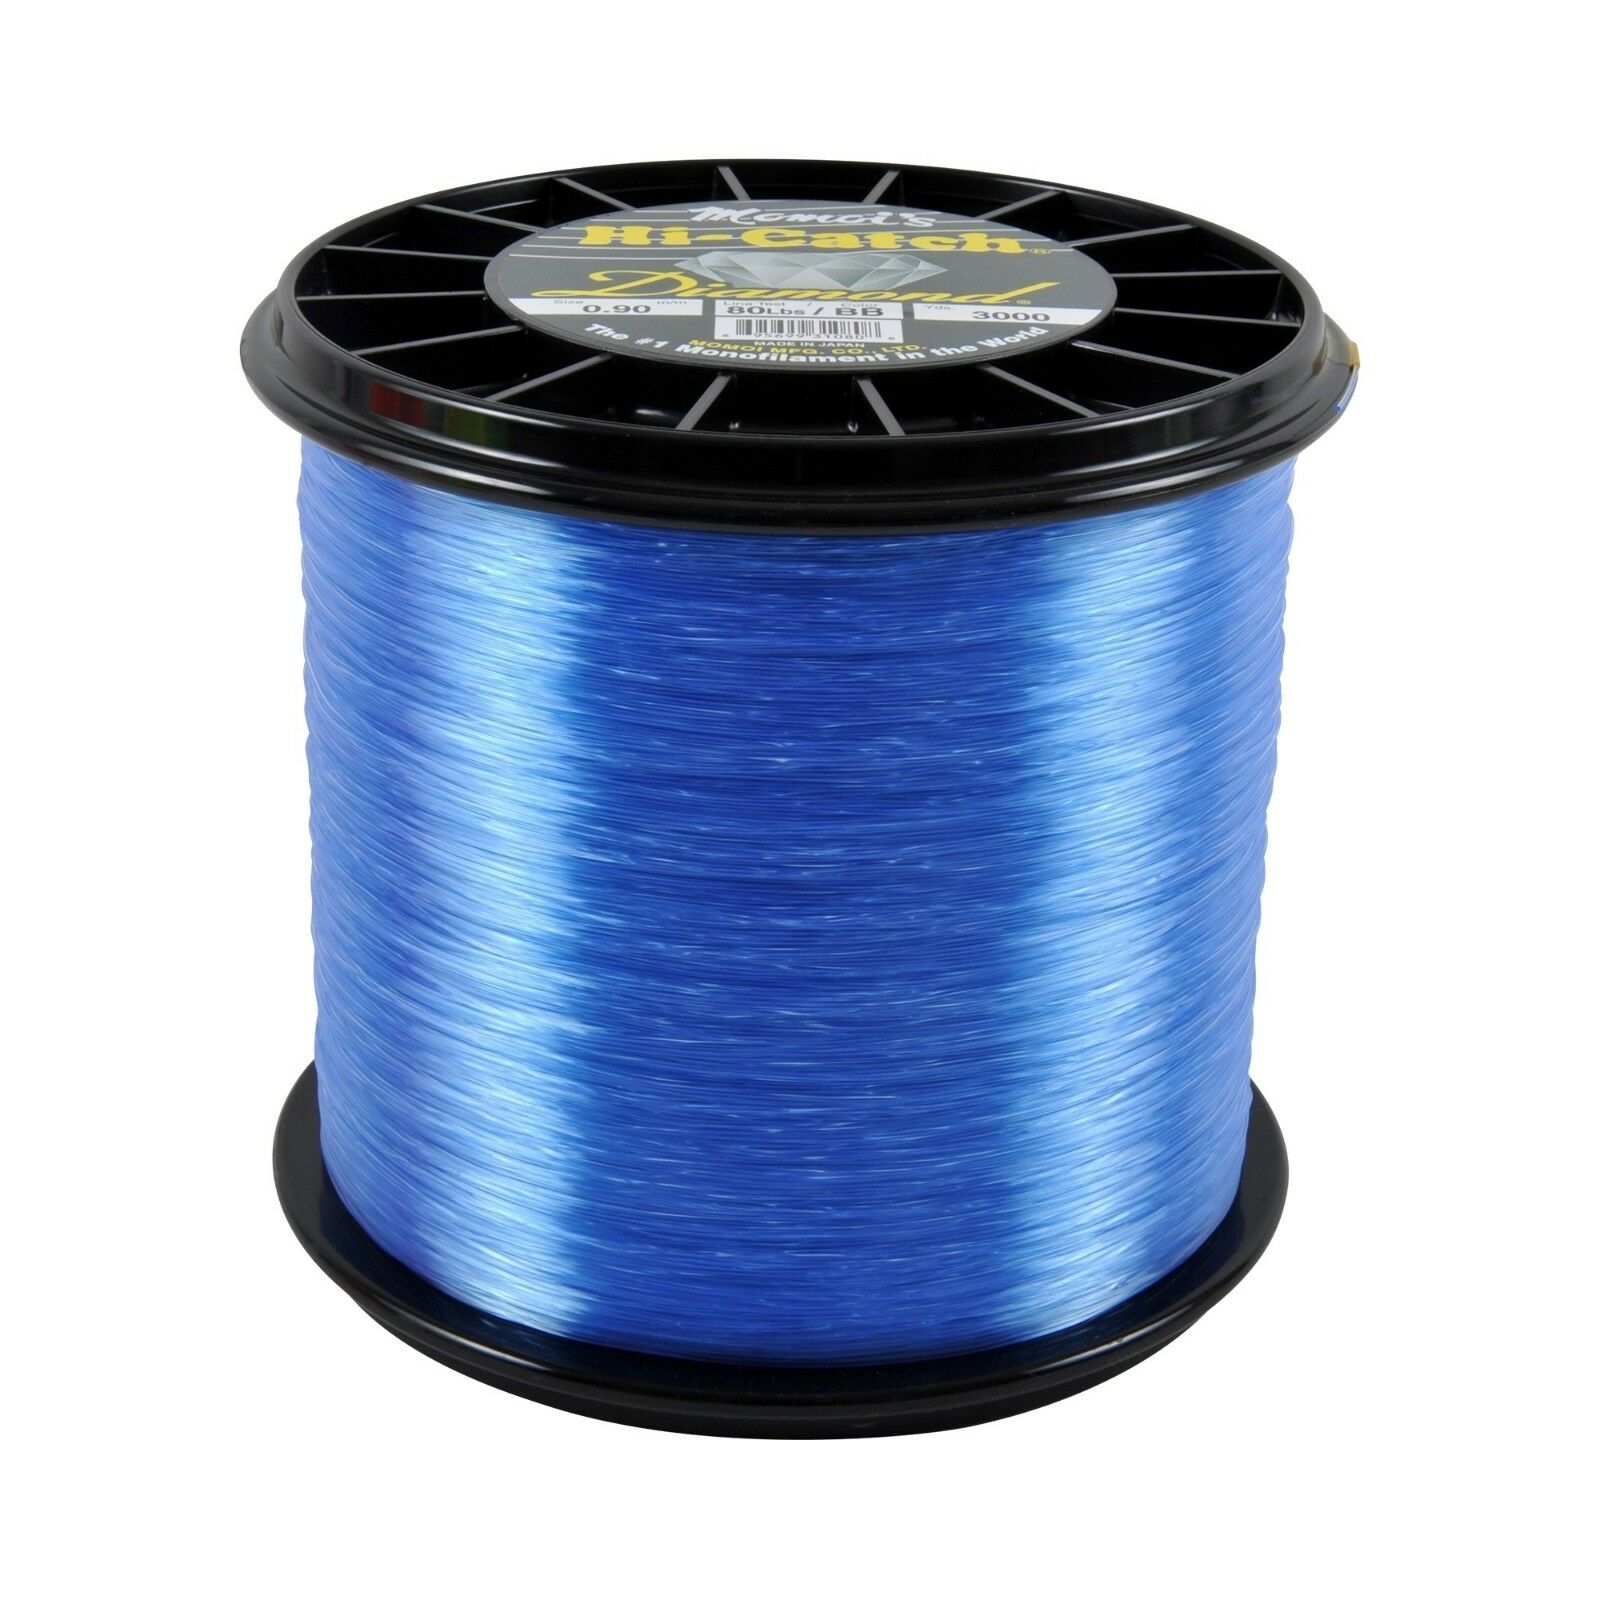 Momoi Diamond Monofilament Fishing Line 3000 Yards - Brillia